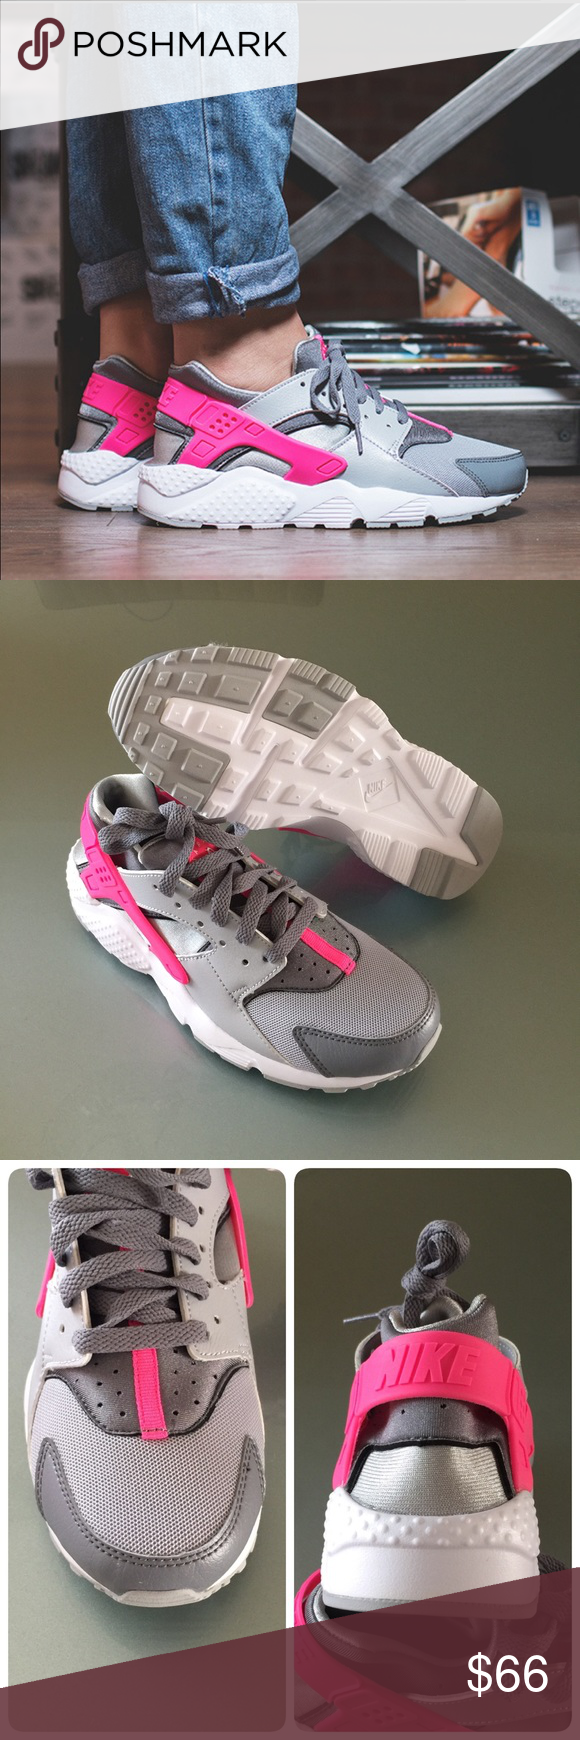 4b589d424200b NIB NIKE grey pink Huarache Run GS ~ 5Y 6.5-7W brand new in box size 5Y  fits women s 6.5 7 wolf grey white cool grey hyper pink comes from smoke  free home ...